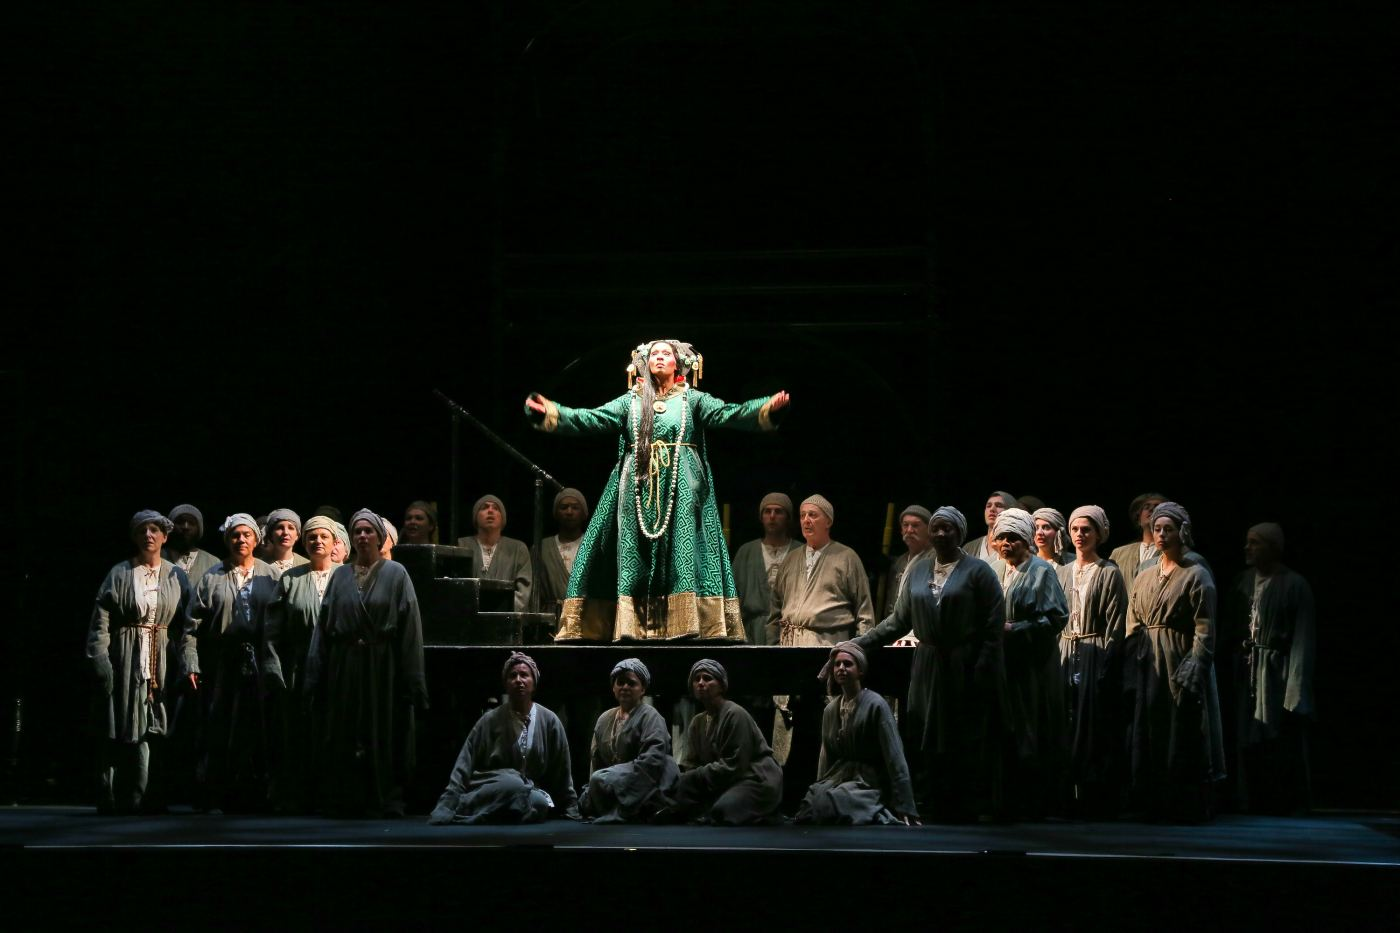 Opera GR presents Turandot